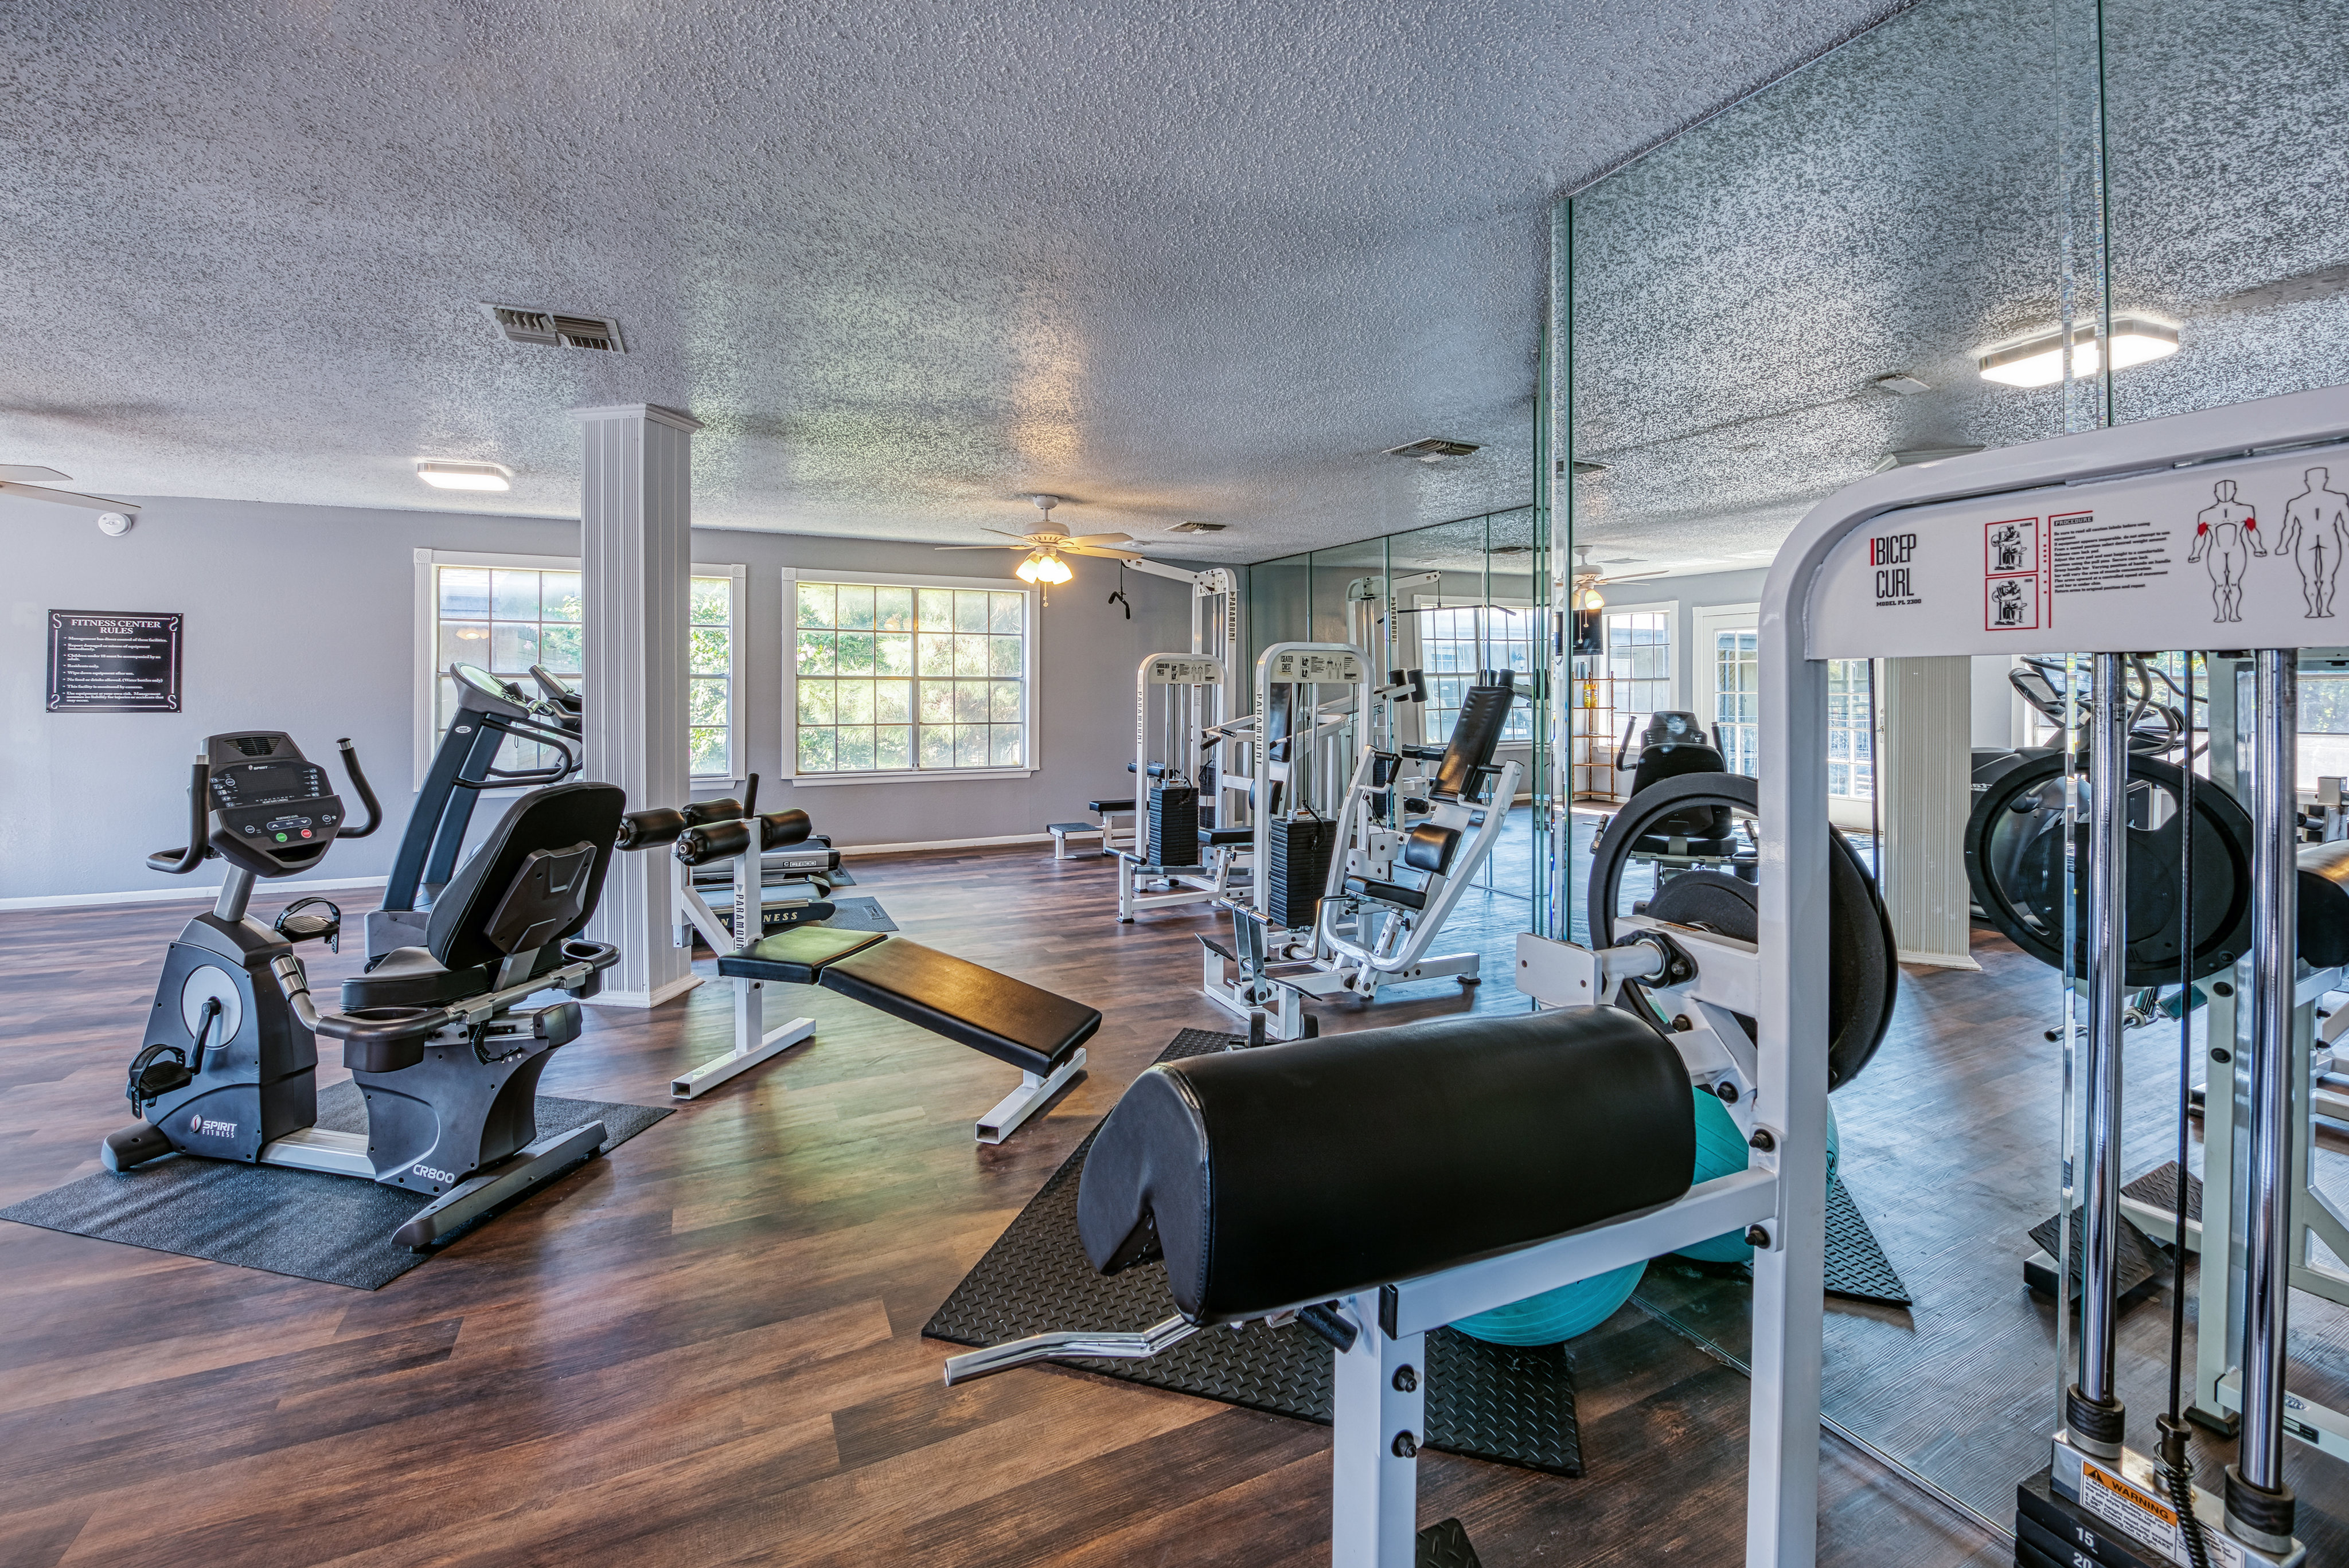 Image of 24 Hour Fitness Center for Savannah Oaks Apartments